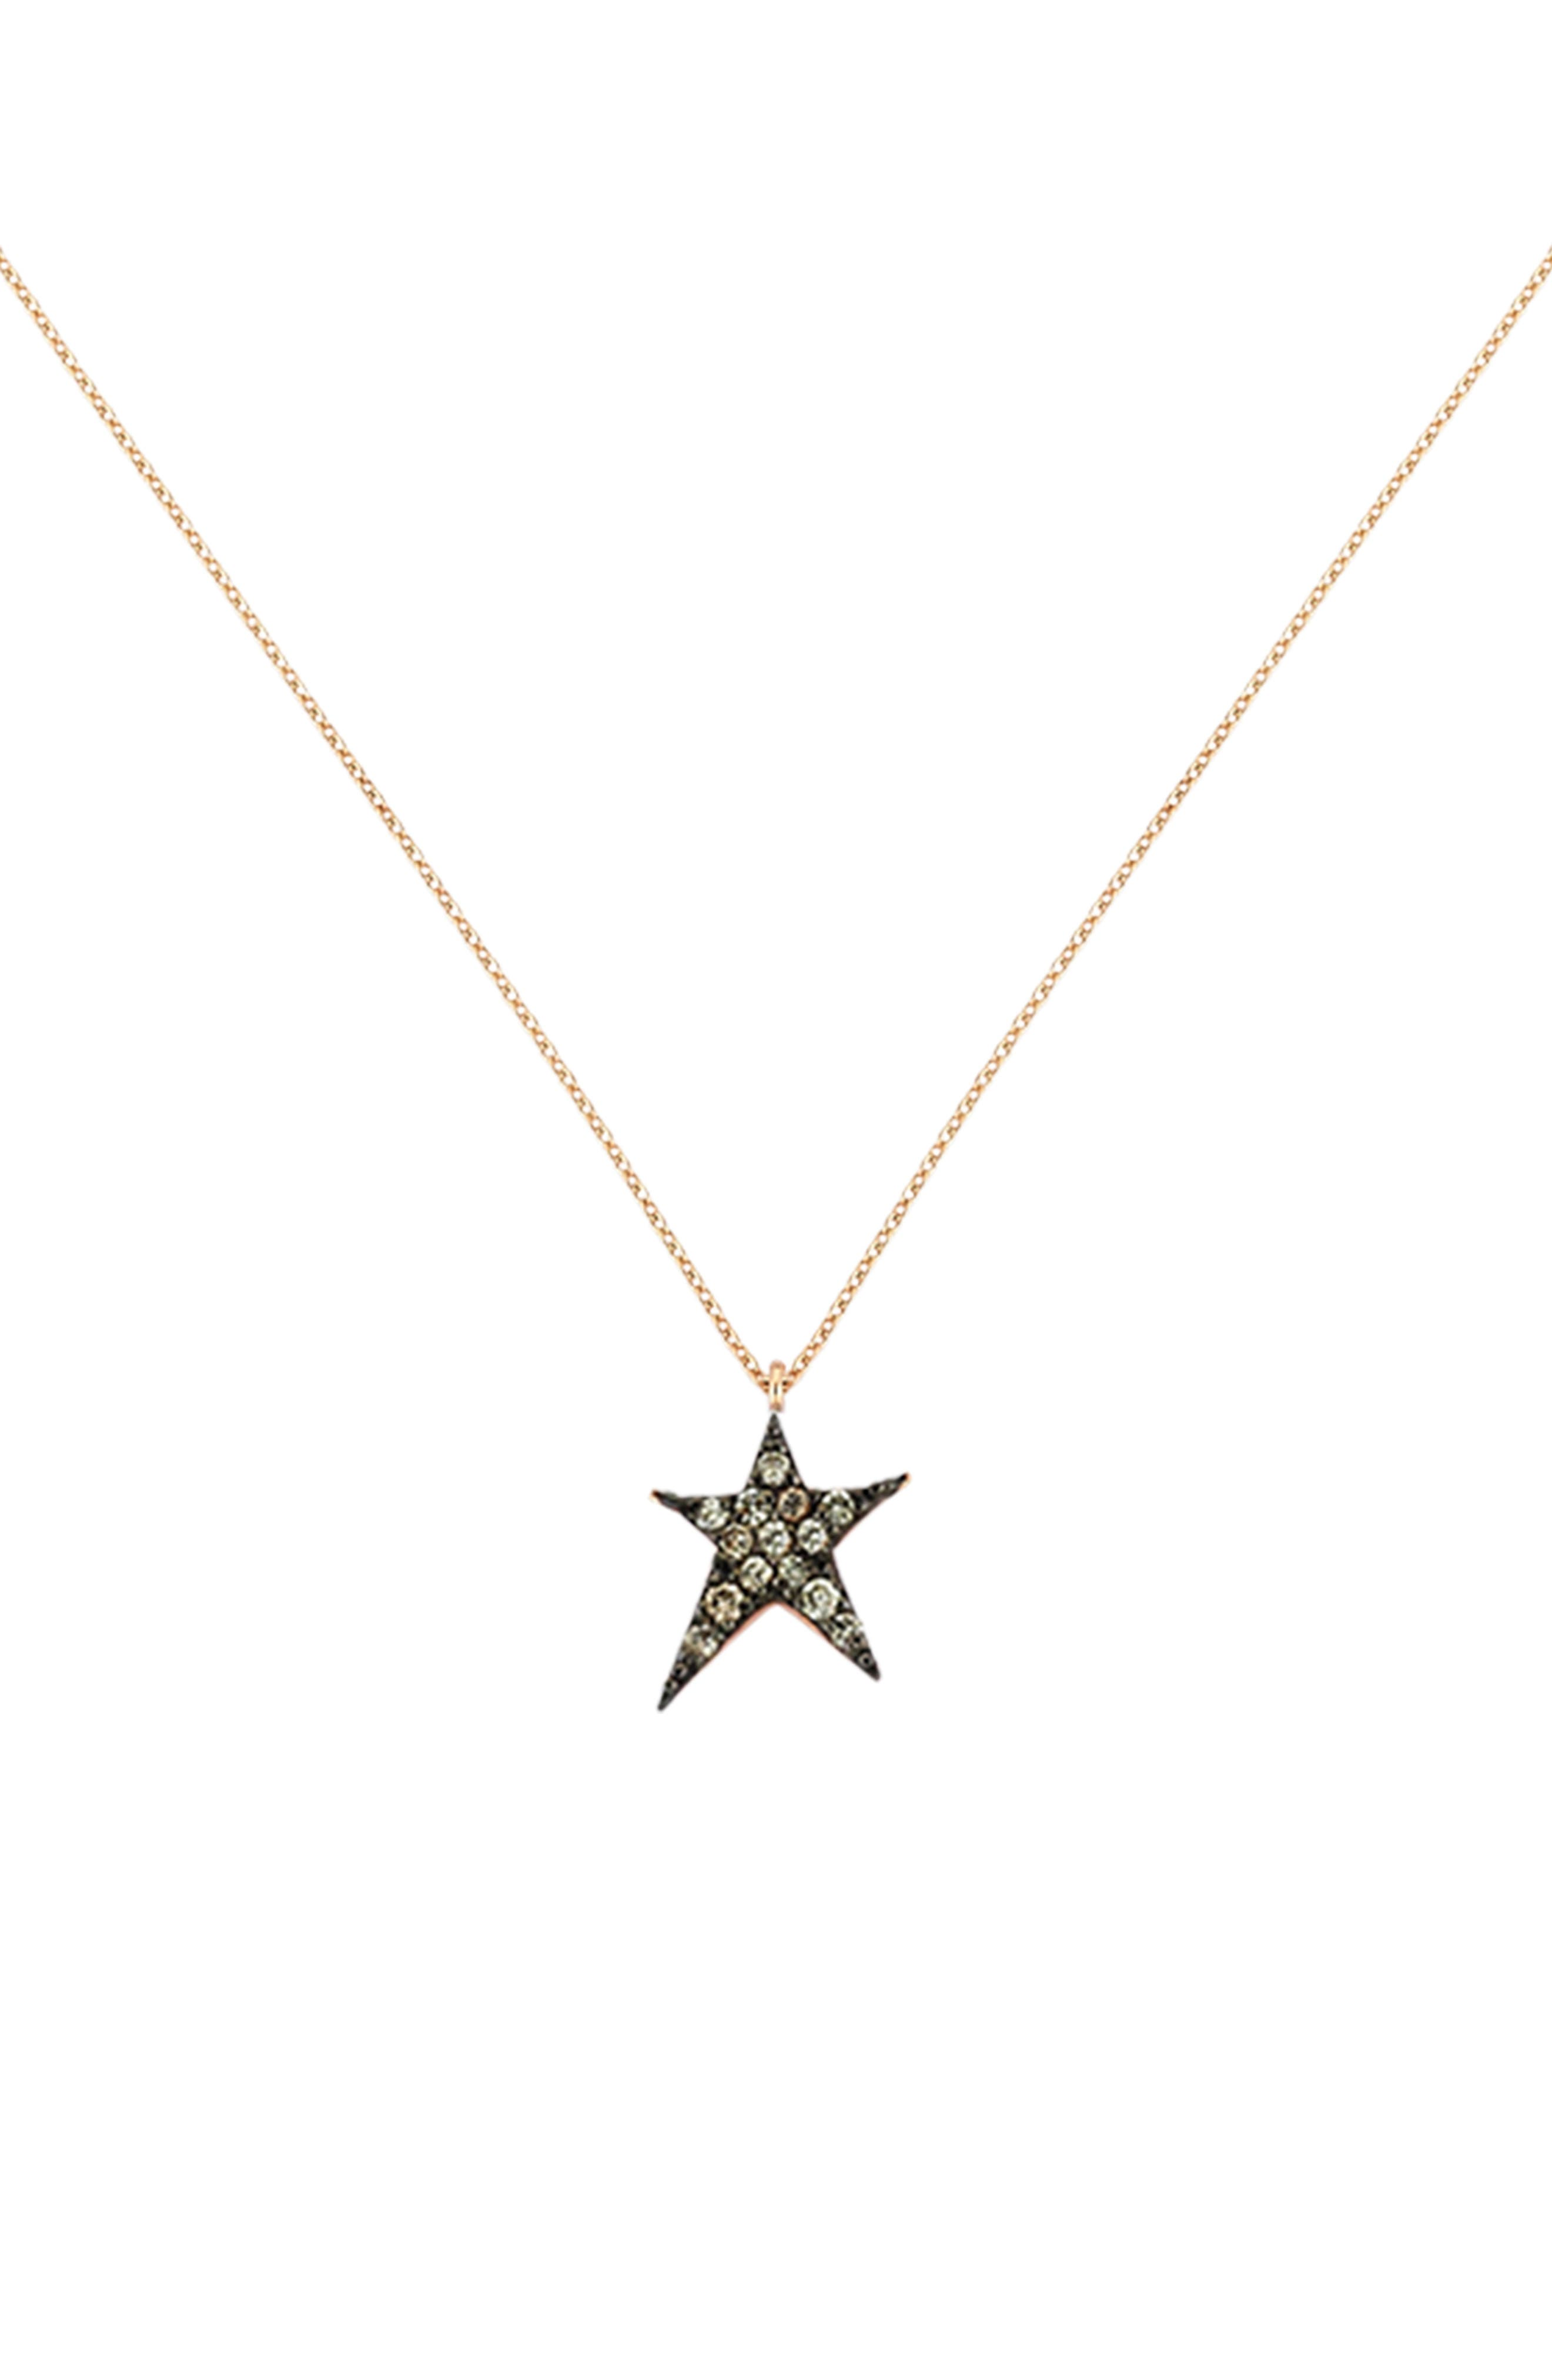 Struck Star Champagne Diamond Necklace,                             Main thumbnail 1, color,                             ROSE GOLD